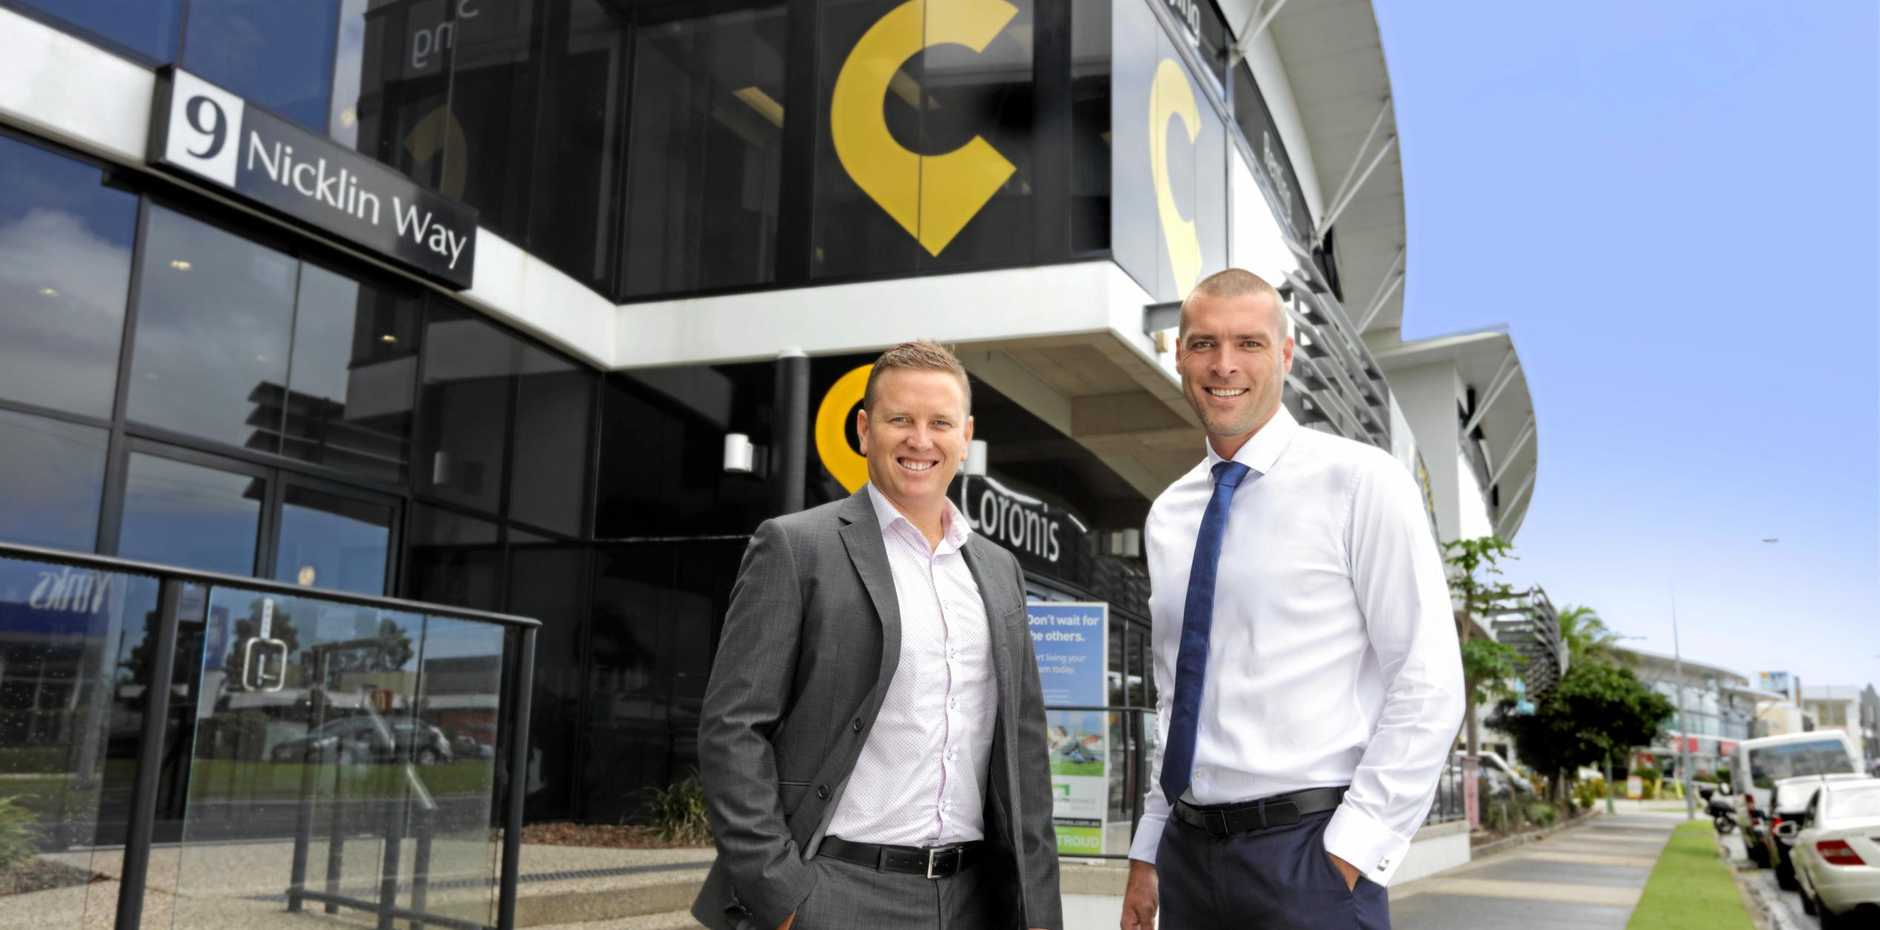 CBRE's Brendan Robins and Ryan Parry at 9 Nicklin Way, Minyama